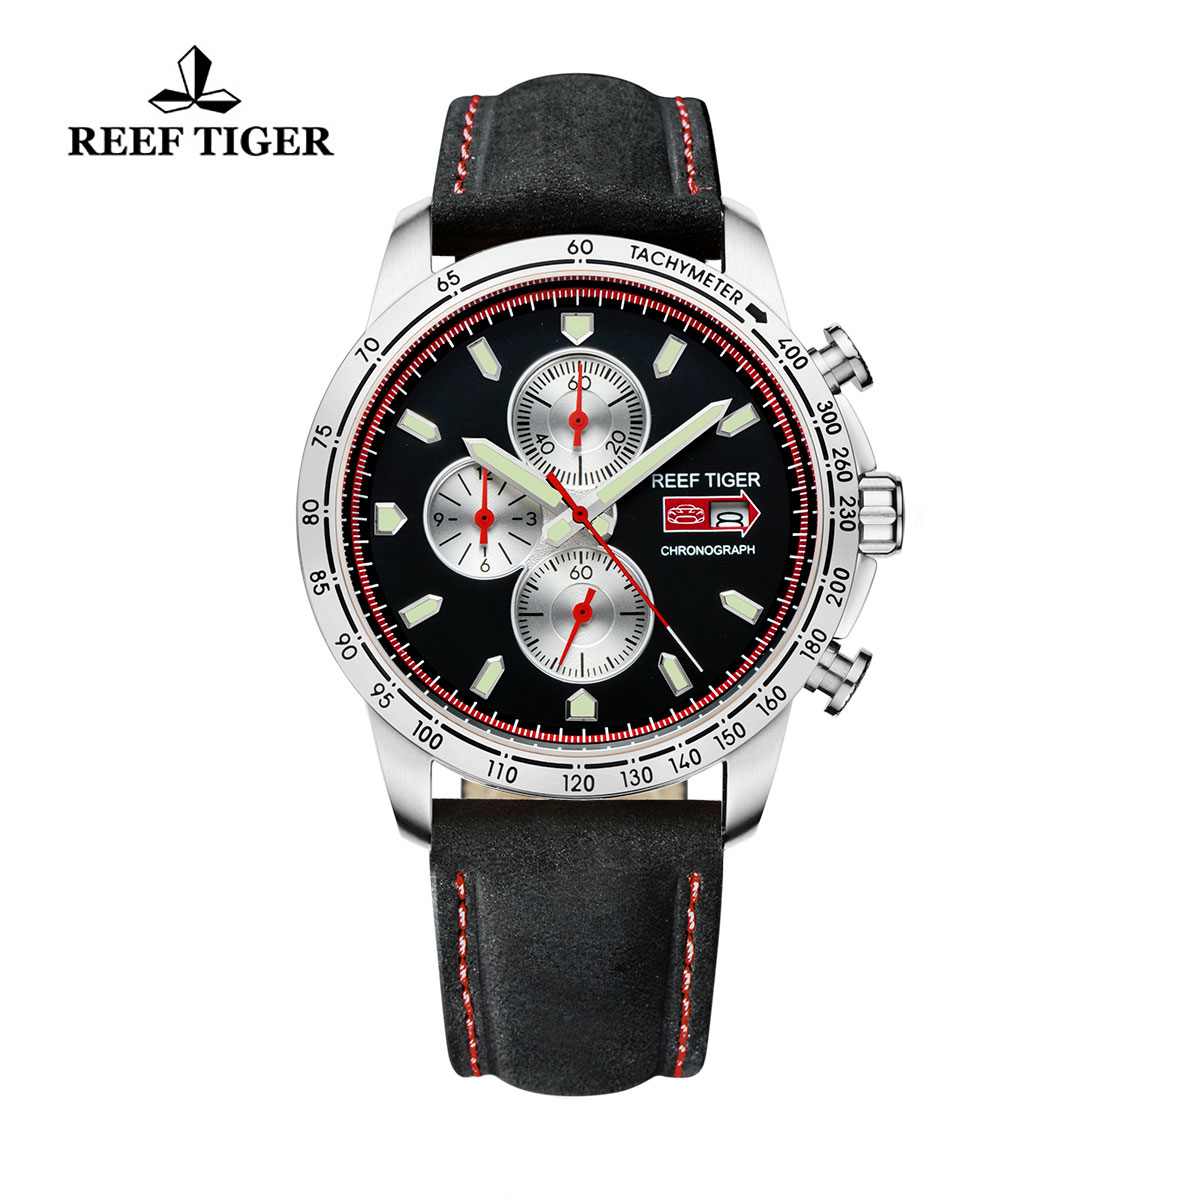 Reef Tiger Racing Casual Watch Stainless Steel Black Dial Leather Strap Chronograph Watch RGA3029-YBB